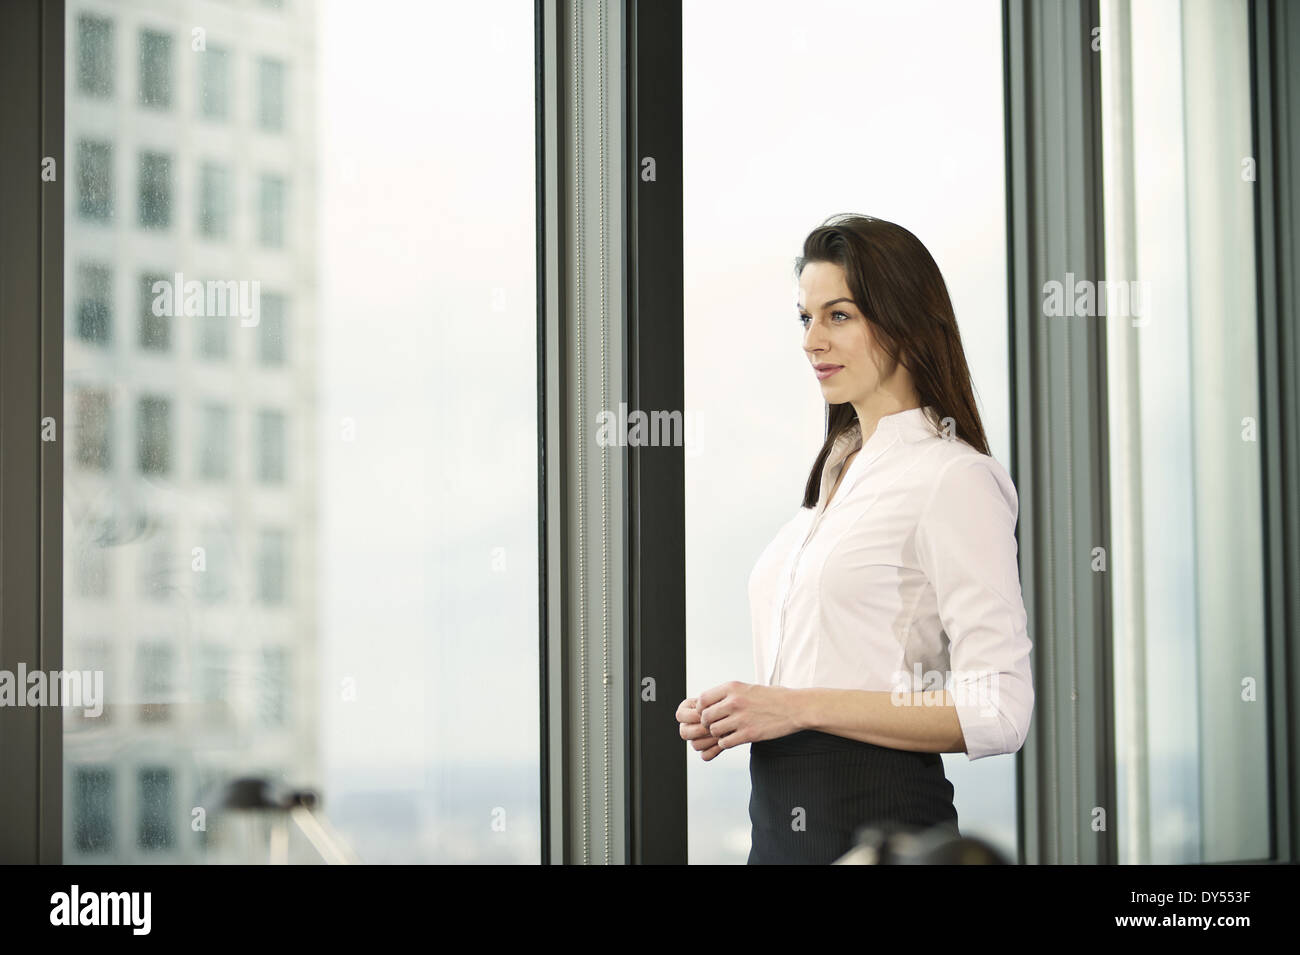 Portrait of businesswoman in high rise office - Stock Image